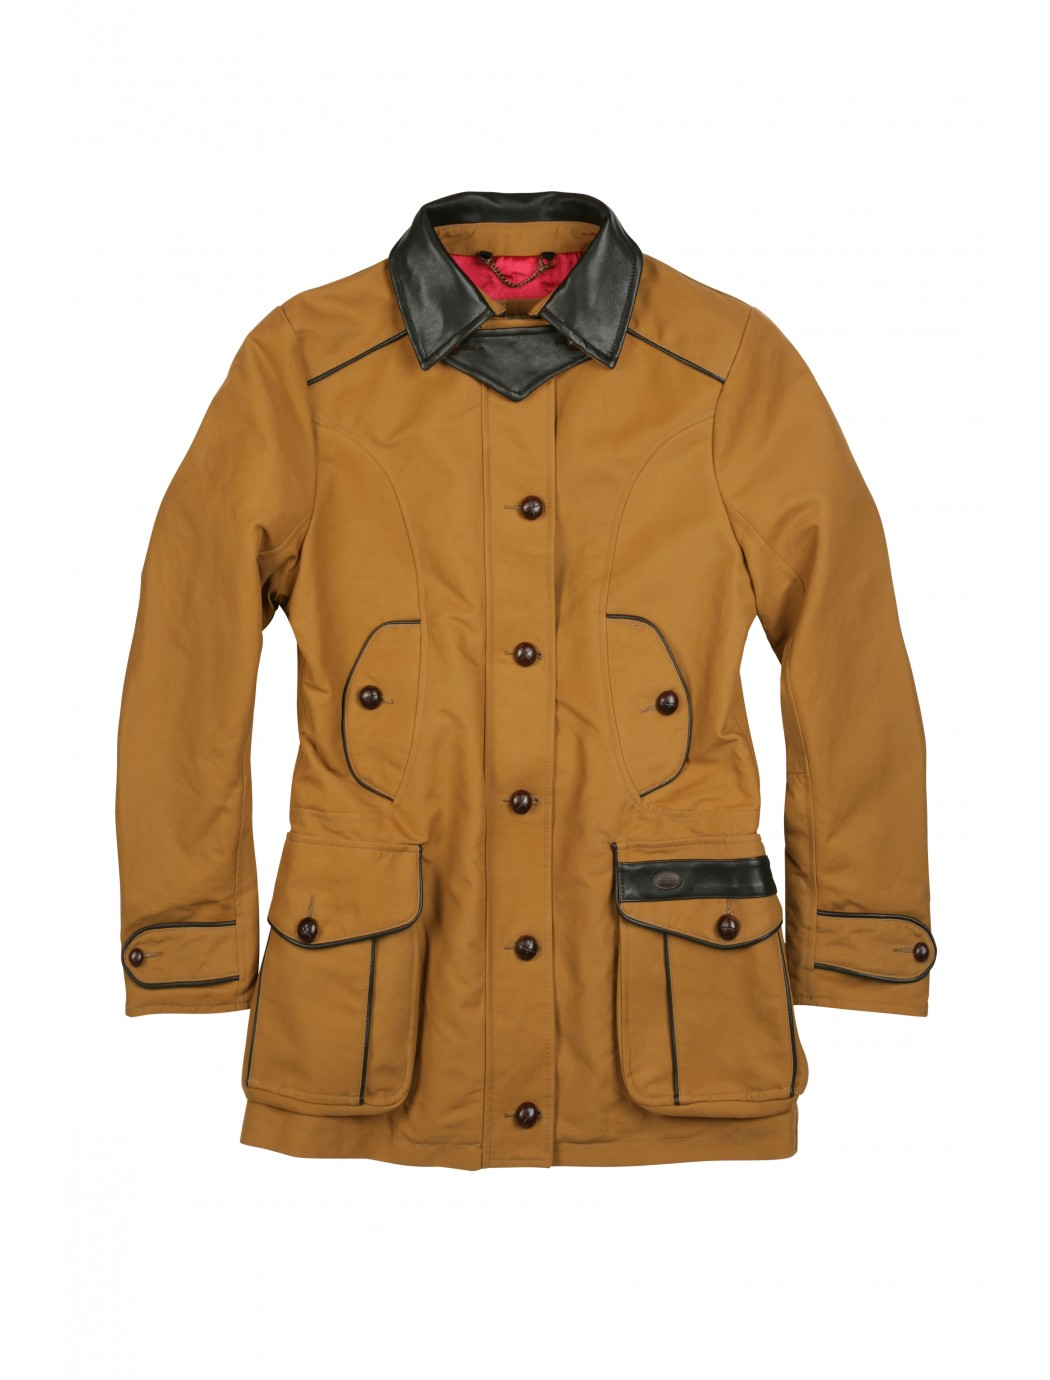 sutton-jacket-autumn-gold-dubarry-1 3